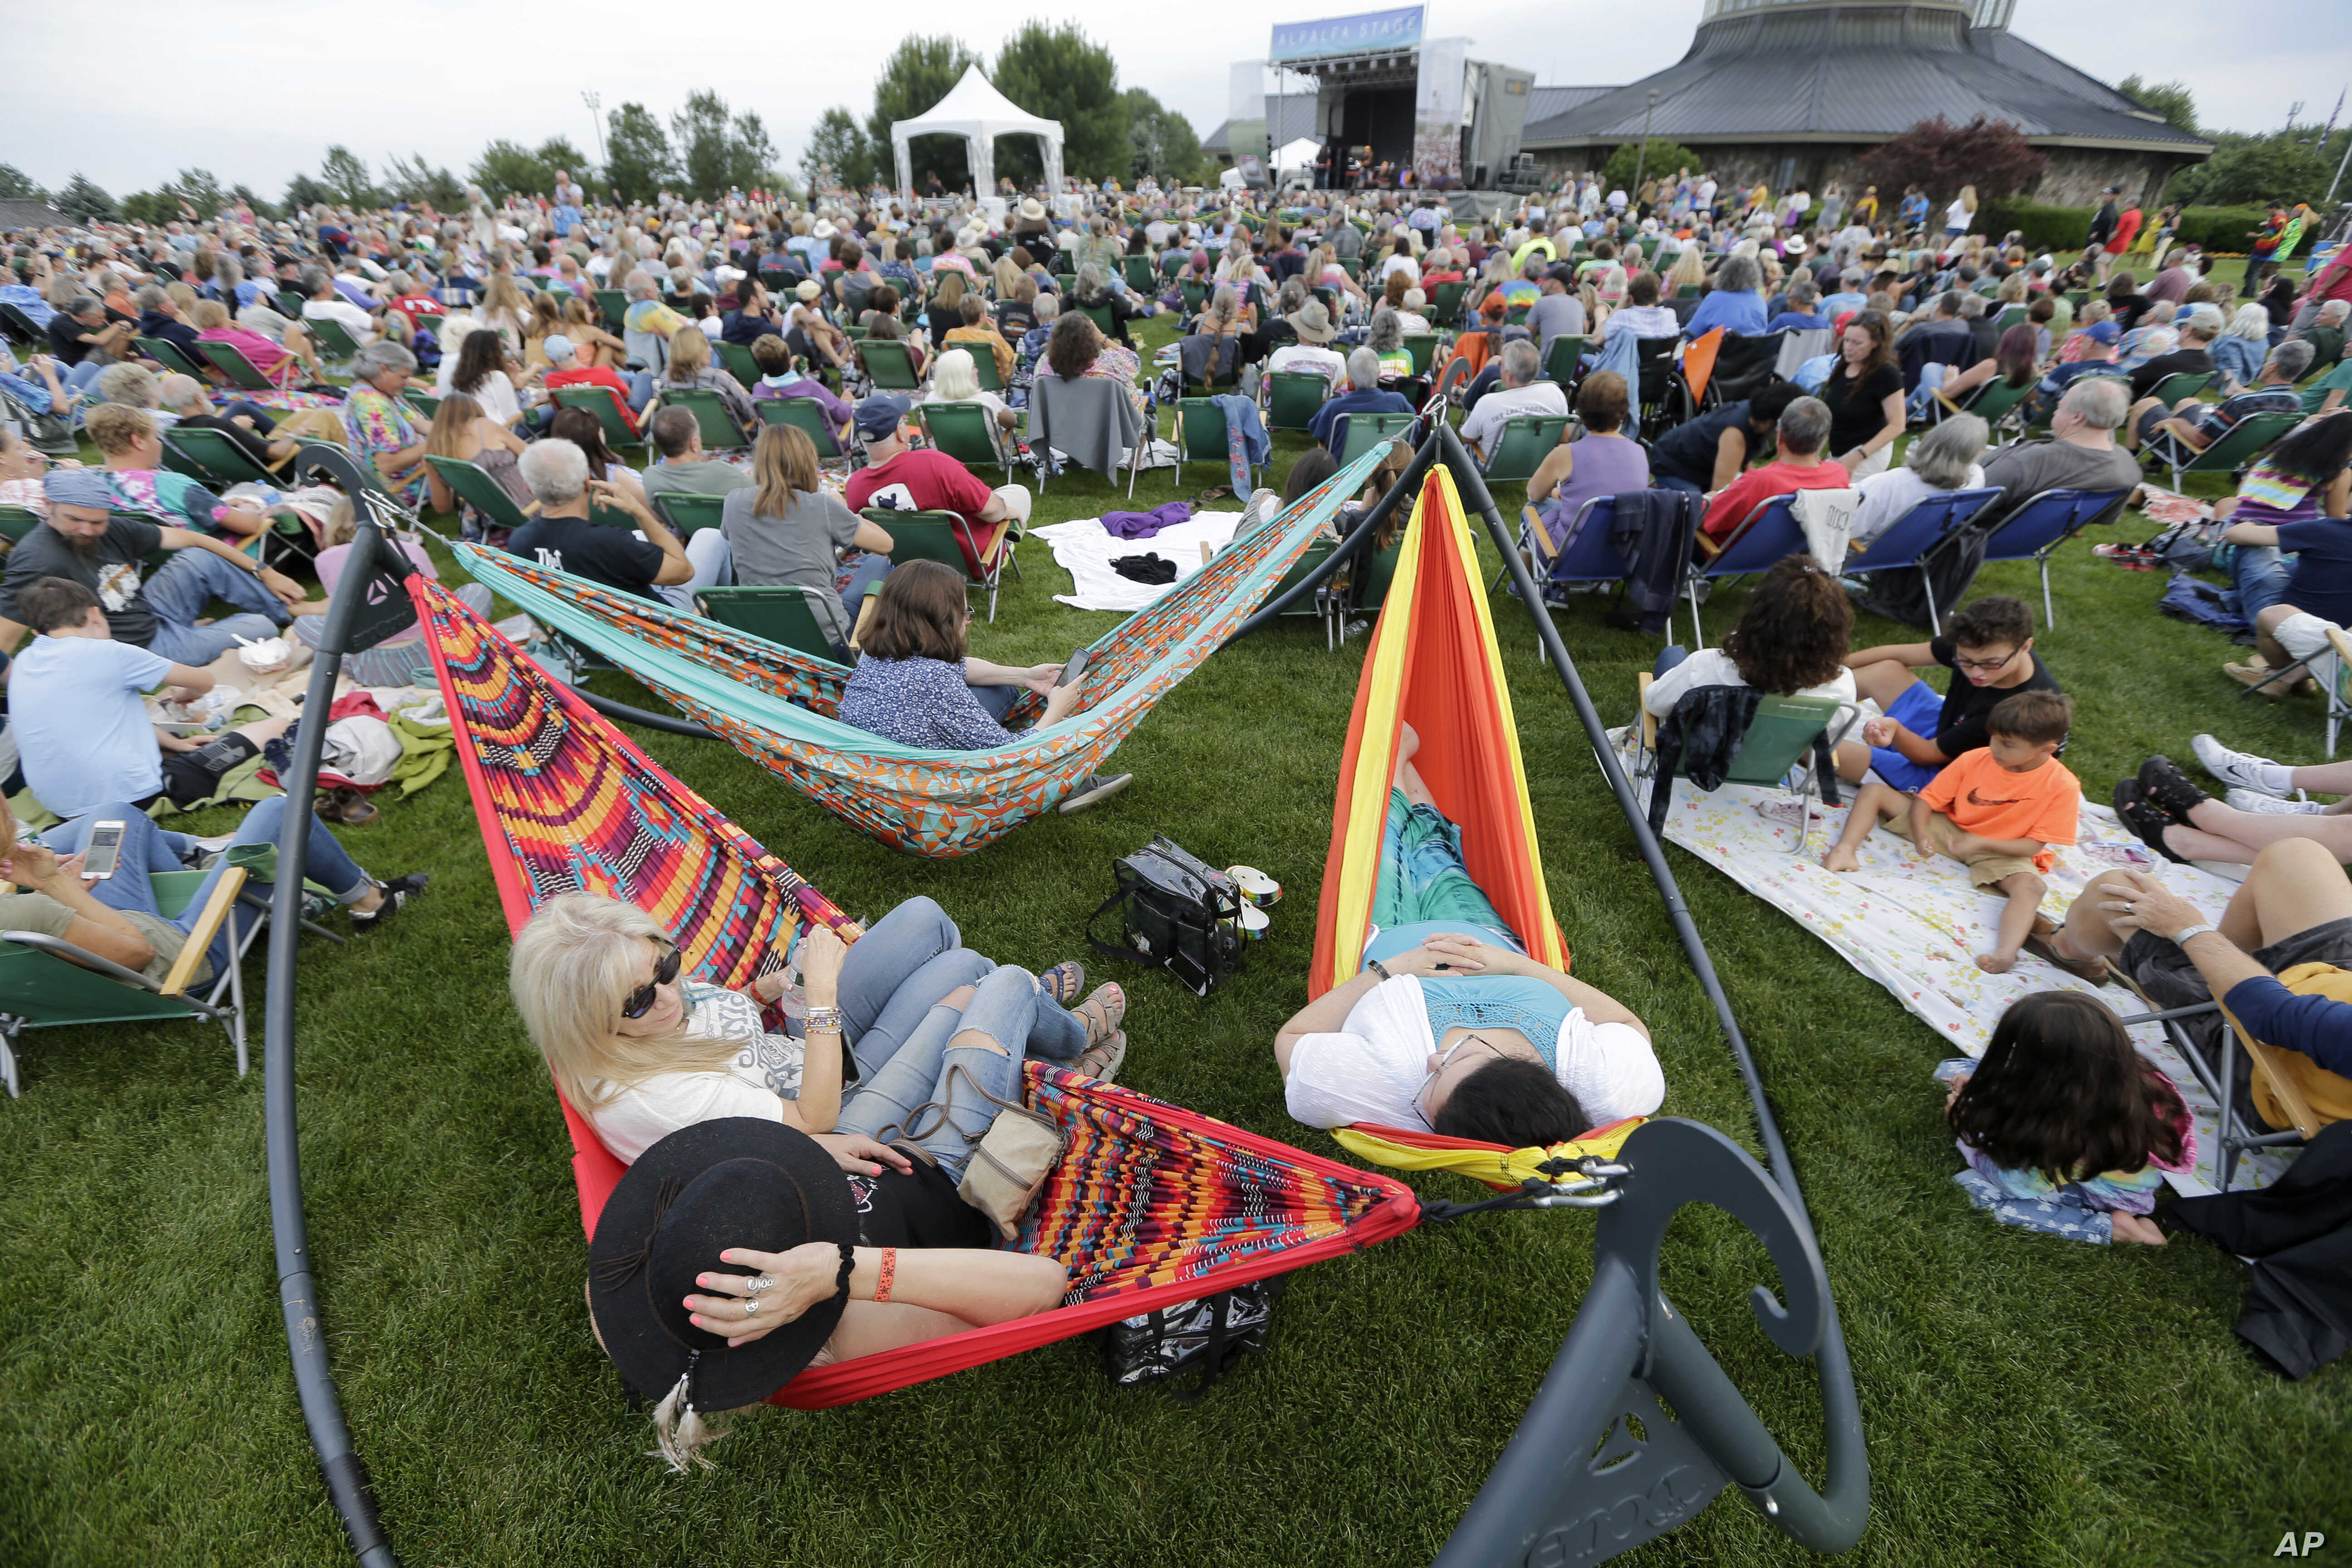 People enjoy a concert by Arlo Guthrie at a Woodstock 50th anniversary event in Bethel, N.Y., Aug. 15, 2019.People enjoy a concert by Arlo Guthrie at a Woodstock 50th anniversary event in Bethel, N.Y., Aug. 15, 2019.